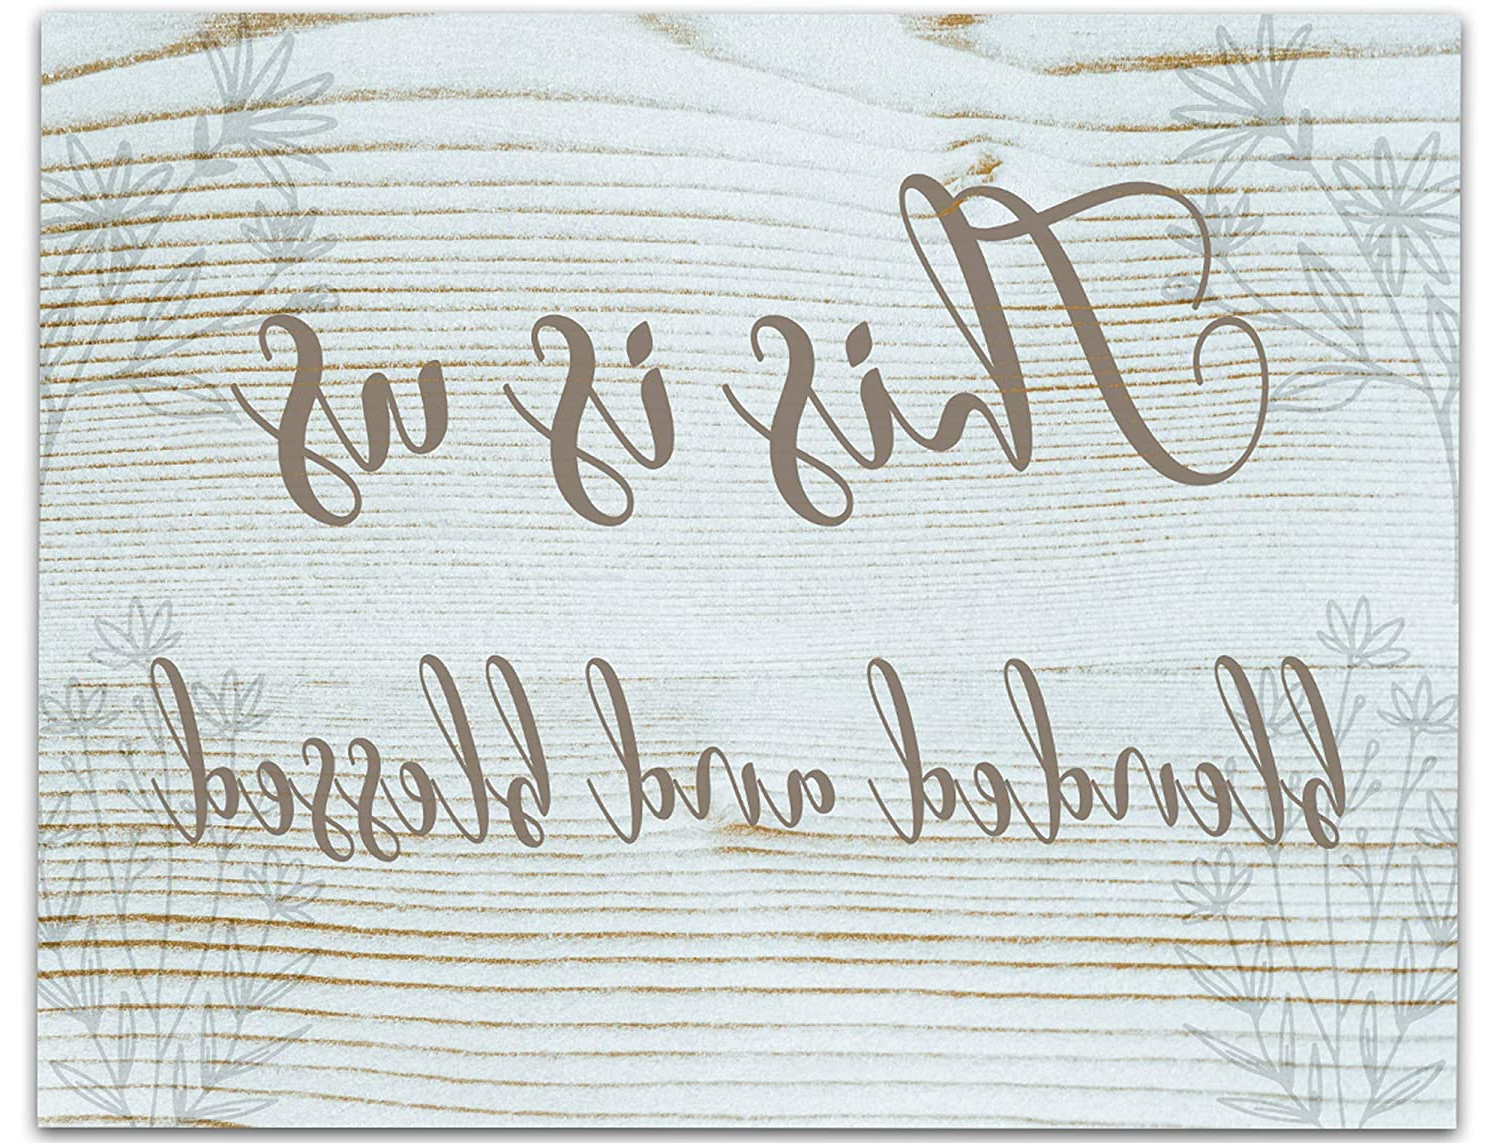 """Blended Fabric Hello Beauty Full Wall Hangings Throughout Current This Is Us Blended And Blessed Wall Art 14""""x11"""", Unframed Wood Effect Blended Family Quote Poster. Wall Hanging Gift Idea For New Families (View 2 of 20)"""